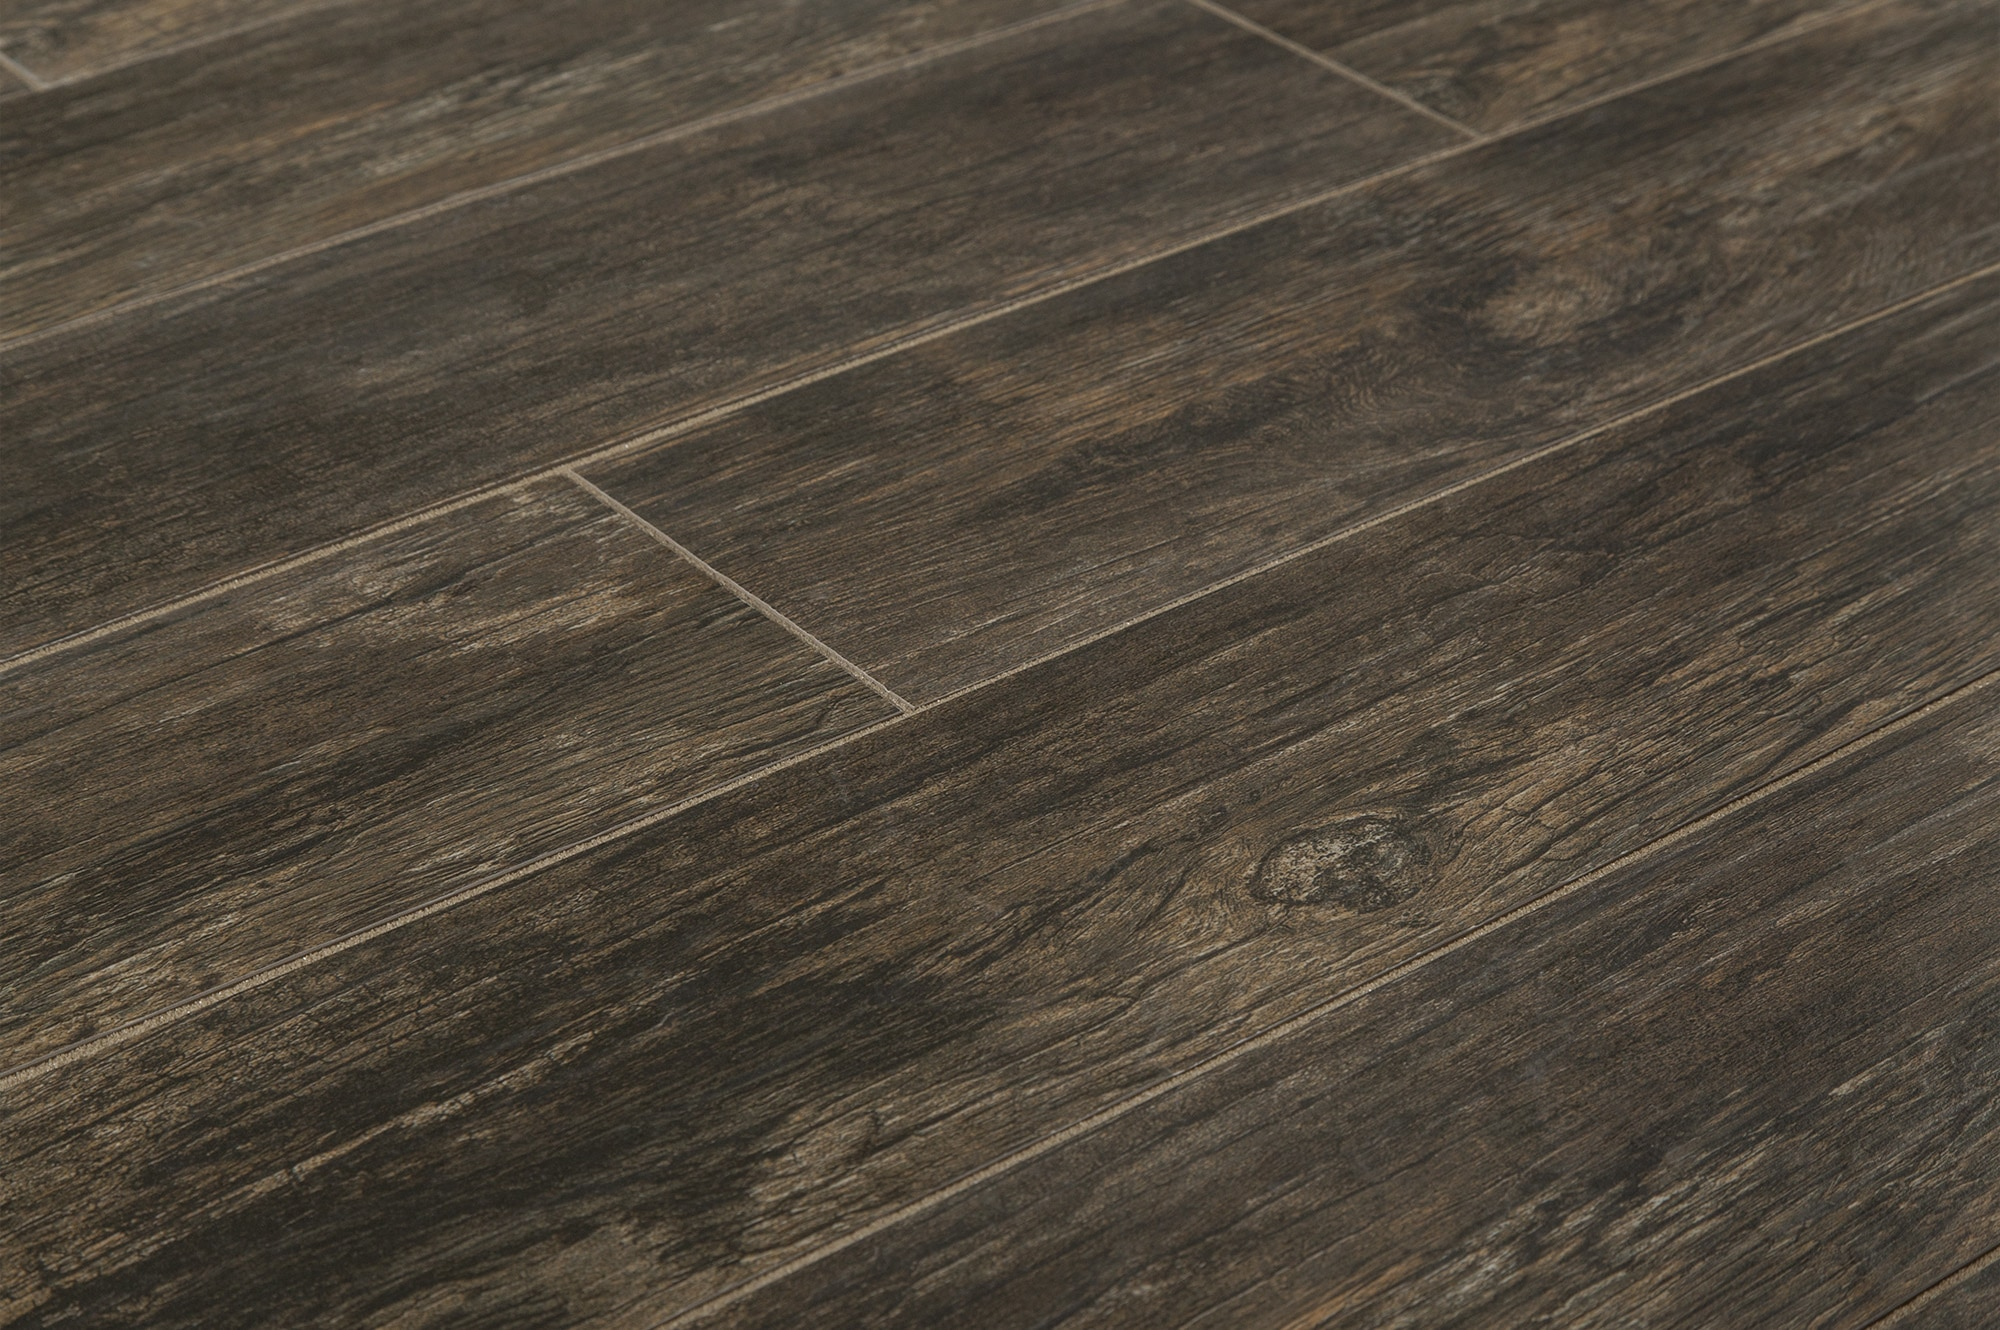 Salerno porcelain tile tacoma wood series dark spruce embossed 6 x35 Wood porcelain tile planks